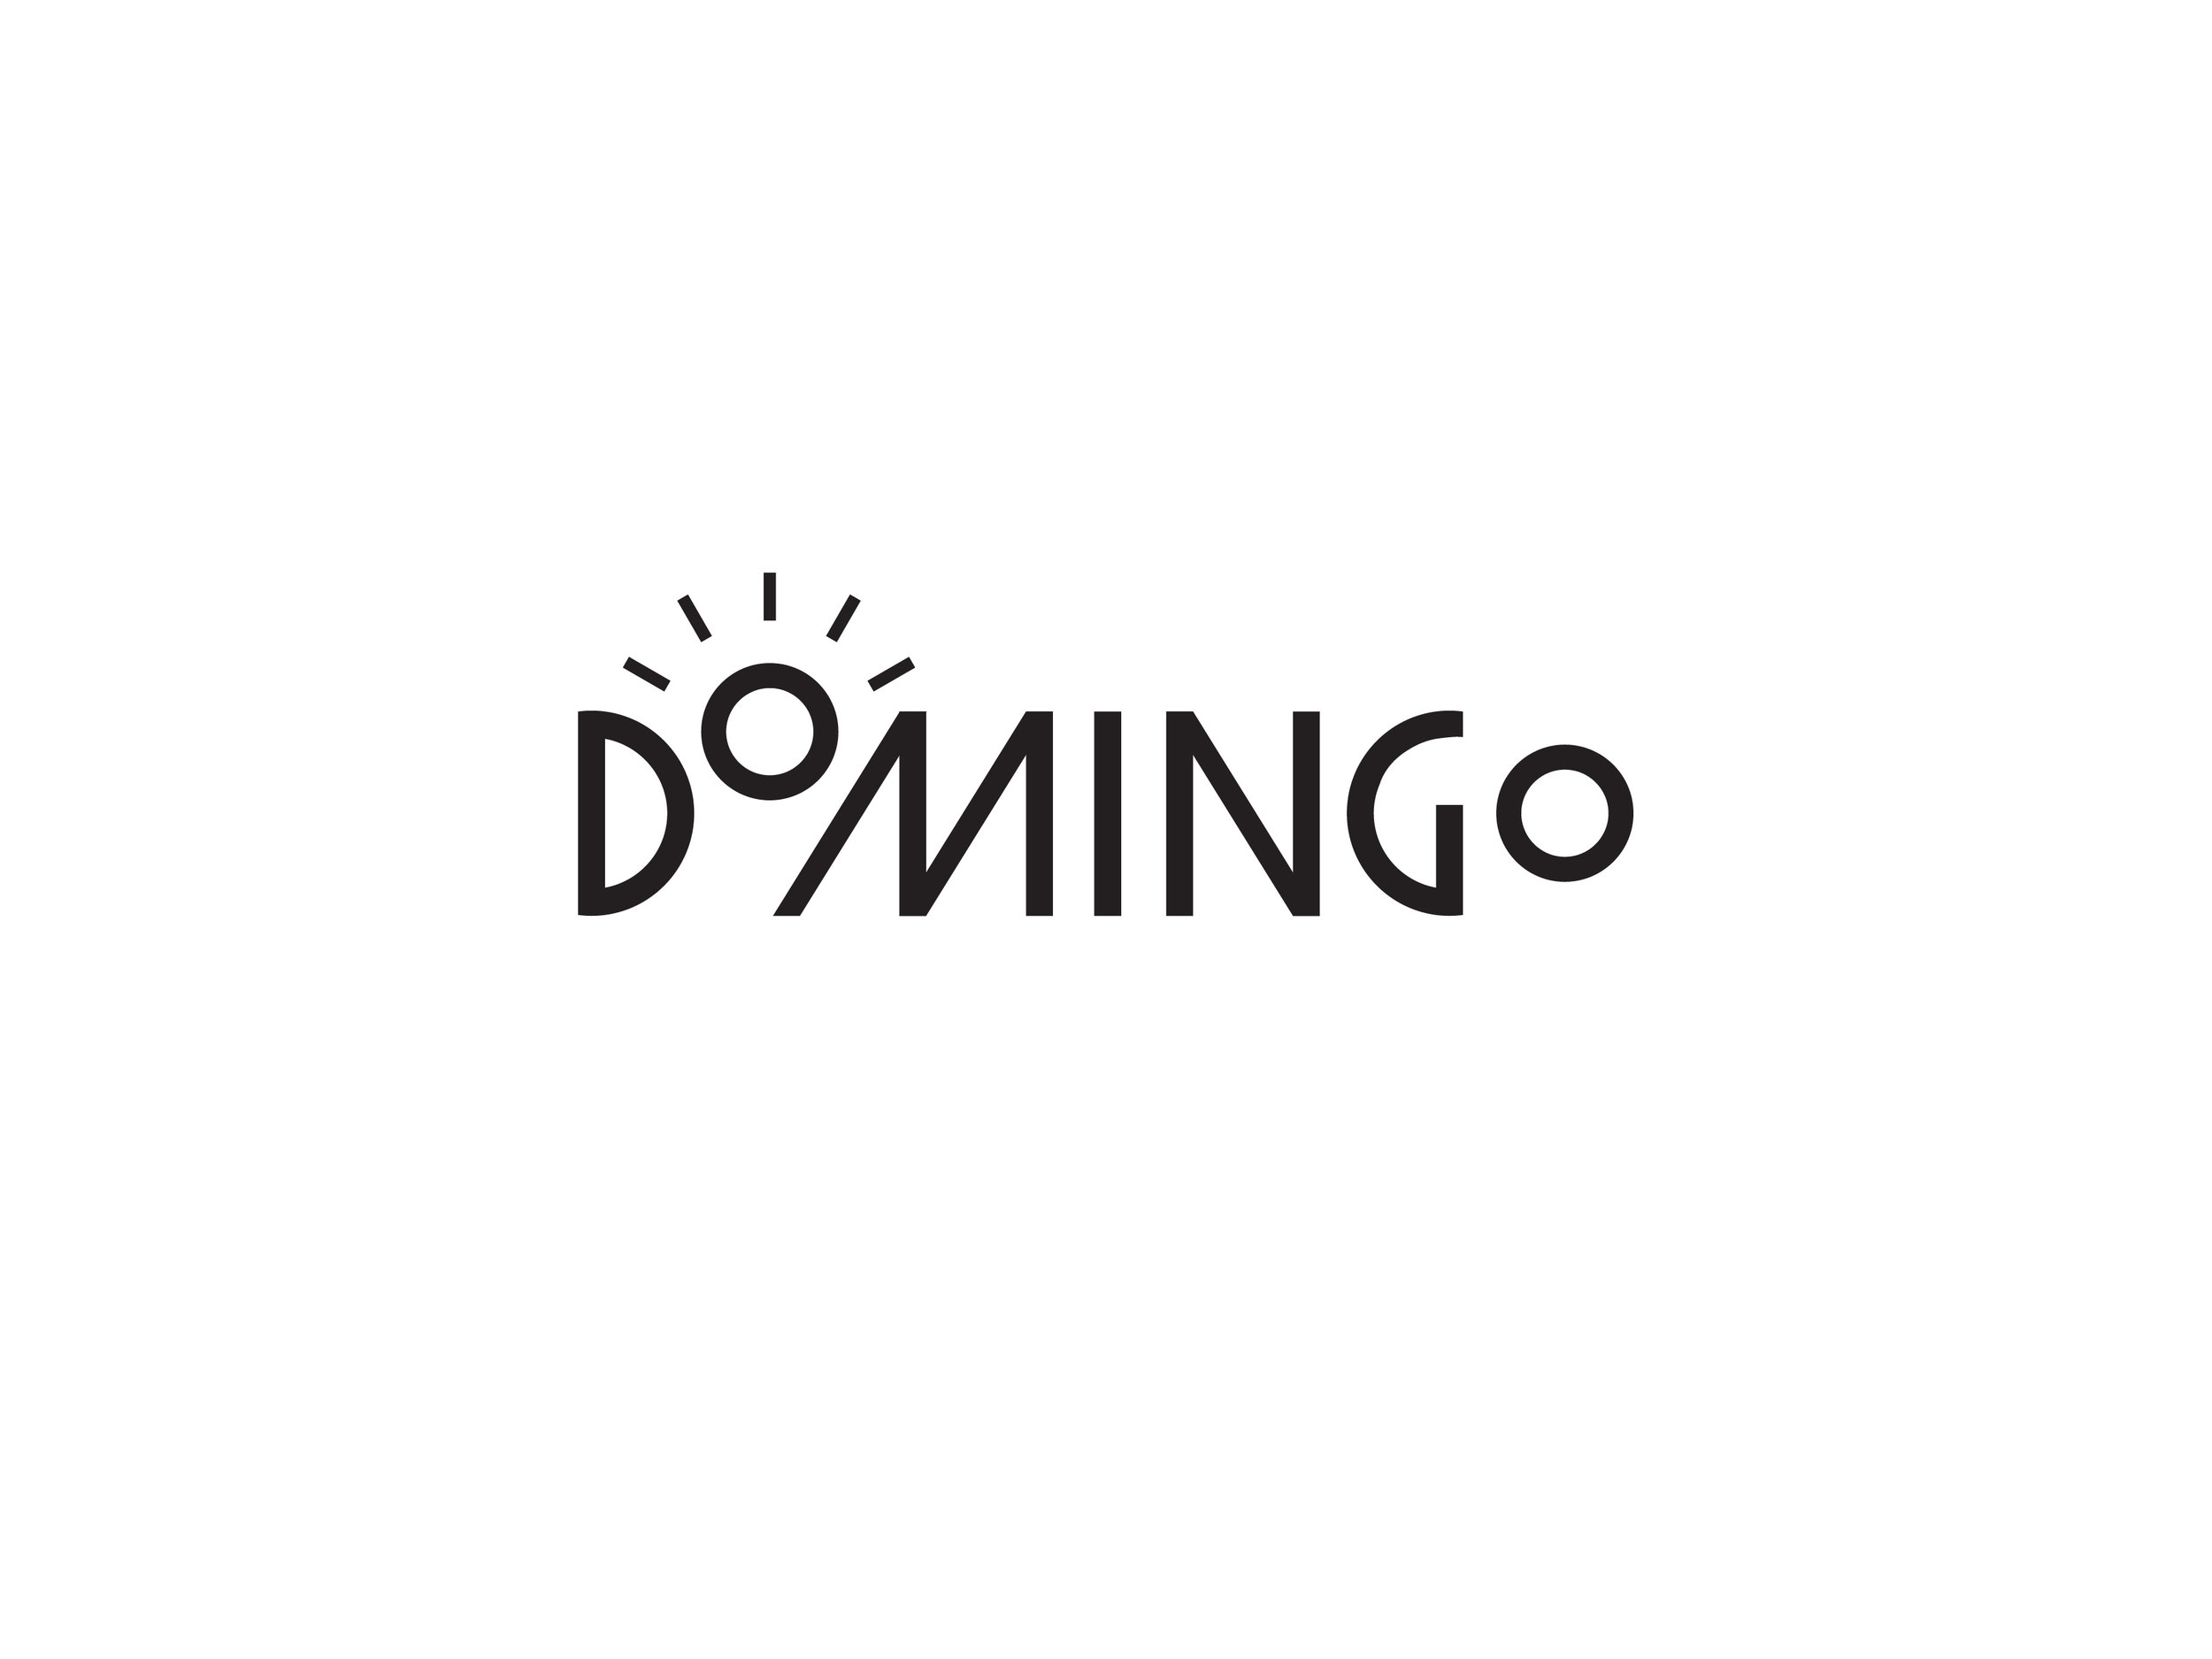 domingo_web-01.jpg